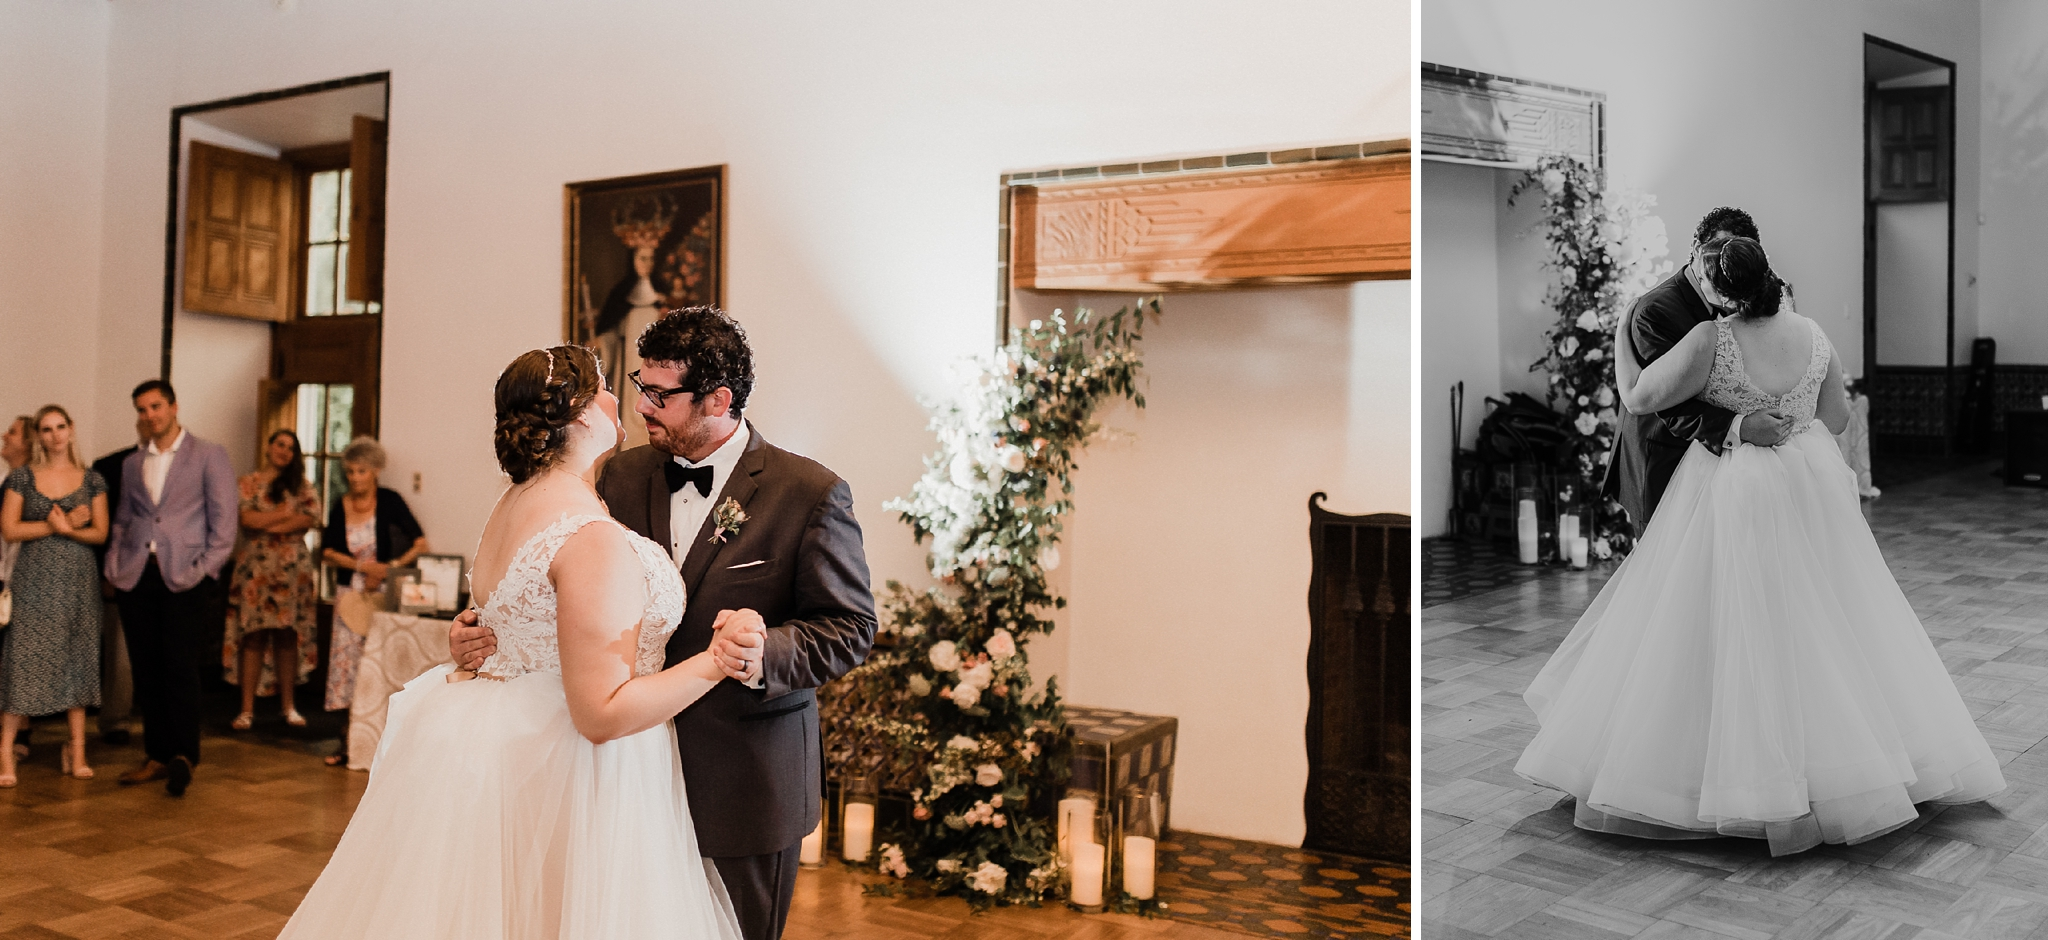 Alicia+lucia+photography+-+albuquerque+wedding+photographer+-+santa+fe+wedding+photography+-+new+mexico+wedding+photographer+-+new+mexico+wedding+-+summer+wedding+-+los+poblanos+wedding+-+albuquerque+wedding_0098.jpg